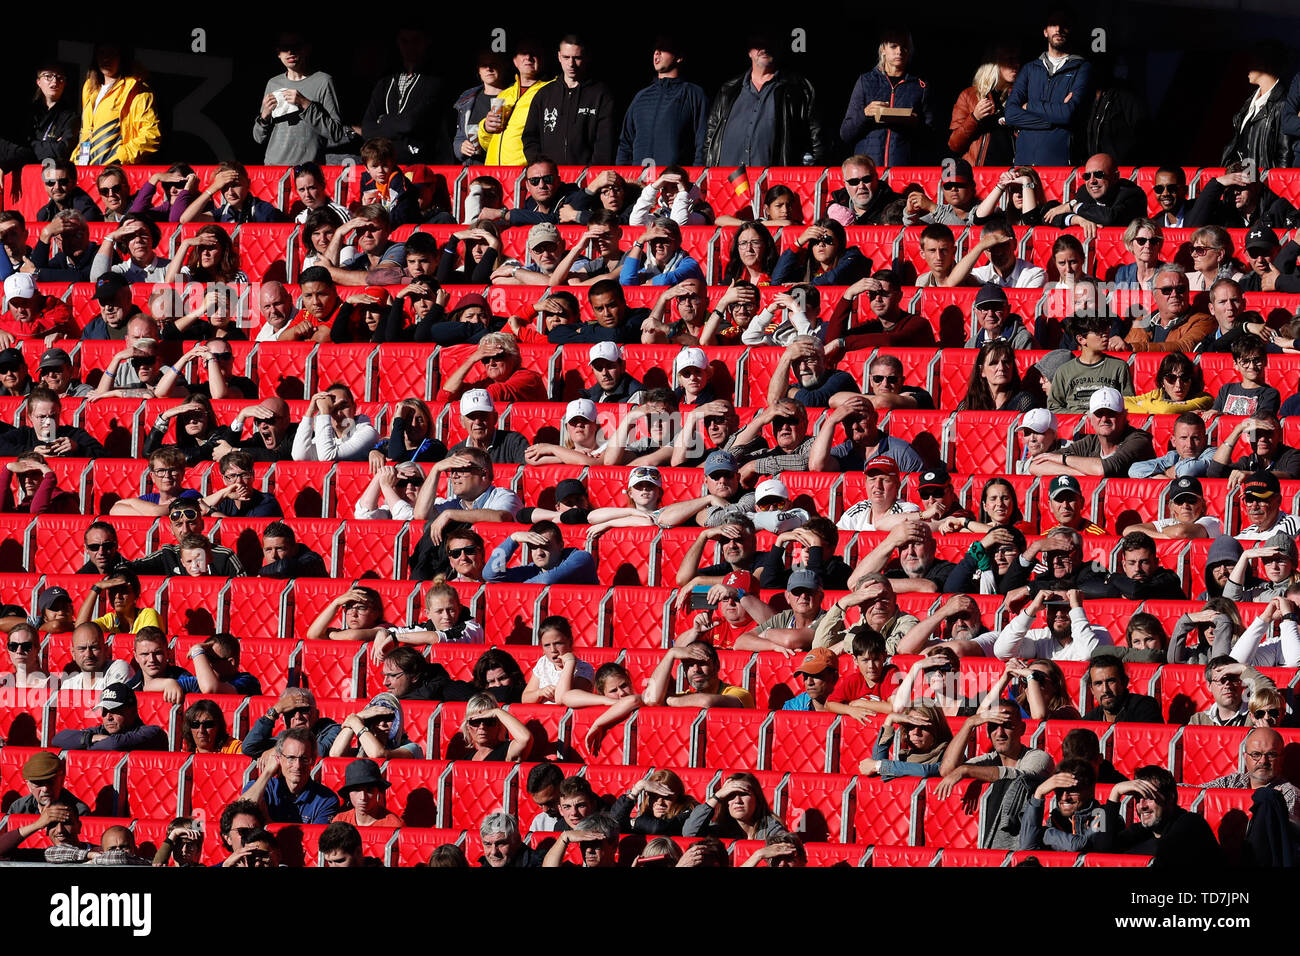 Valenciennes, France. 12th June, 2019. Fans watch the Group B match between Germany and Spain at the 2019 FIFA Women's World Cup in Valenciennes, France, June 12, 2019. Germany won 1-0 . Credit: Zheng Huansong/Xinhua/Alamy Live News Stock Photo